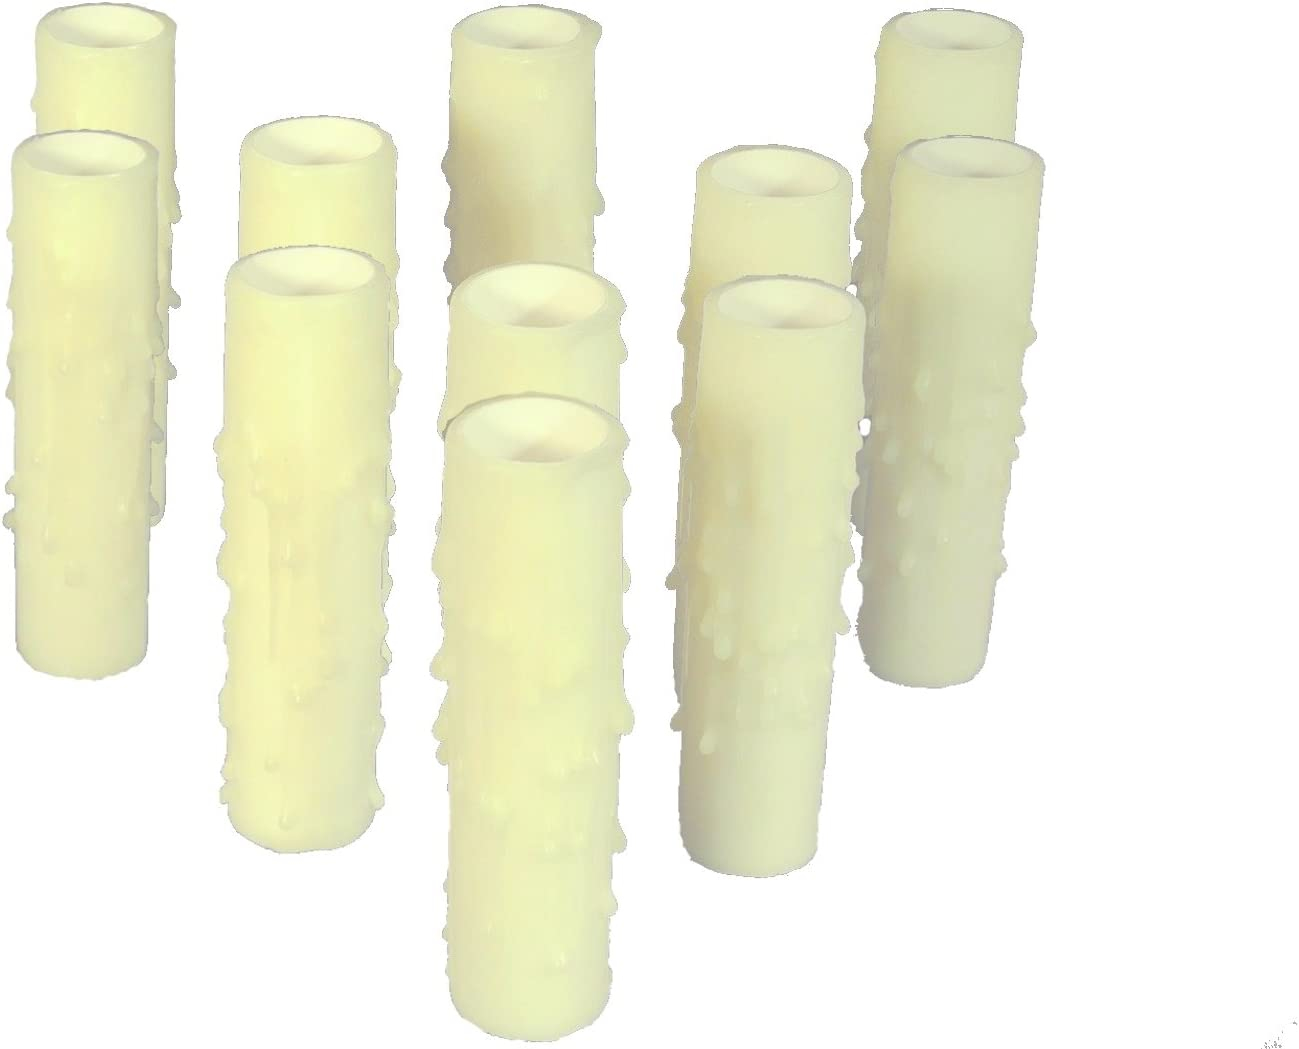 Socket Sleeves Chandelier Covers Set of 6 pc.2 tall Palomino Candelabra Base Thin 3//4 Inner Diameter Beeswax Candle Covers